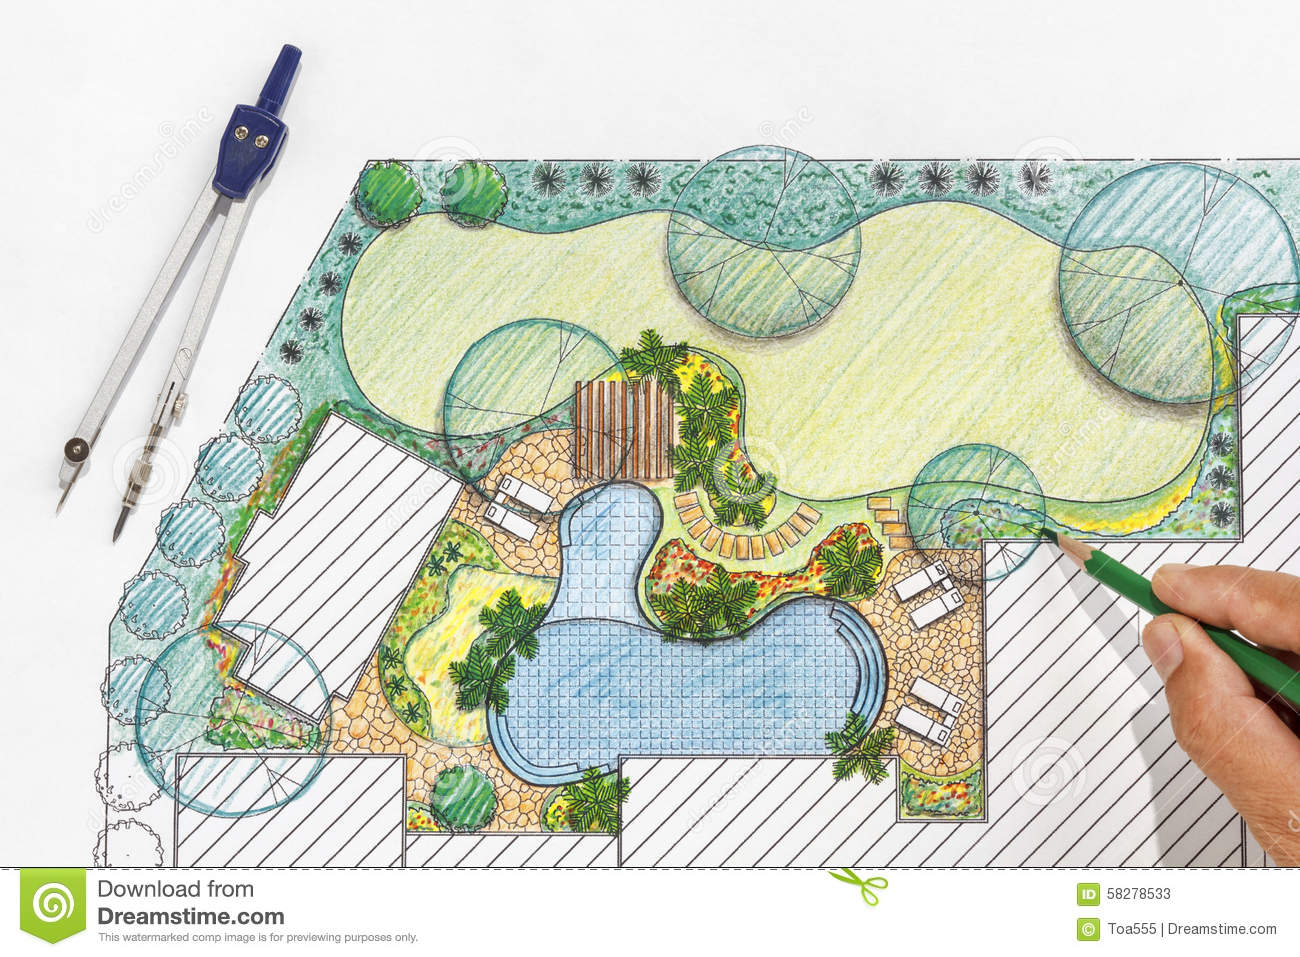 Landscape architect design backyard plan for villa stock for Backyard landscape design plans